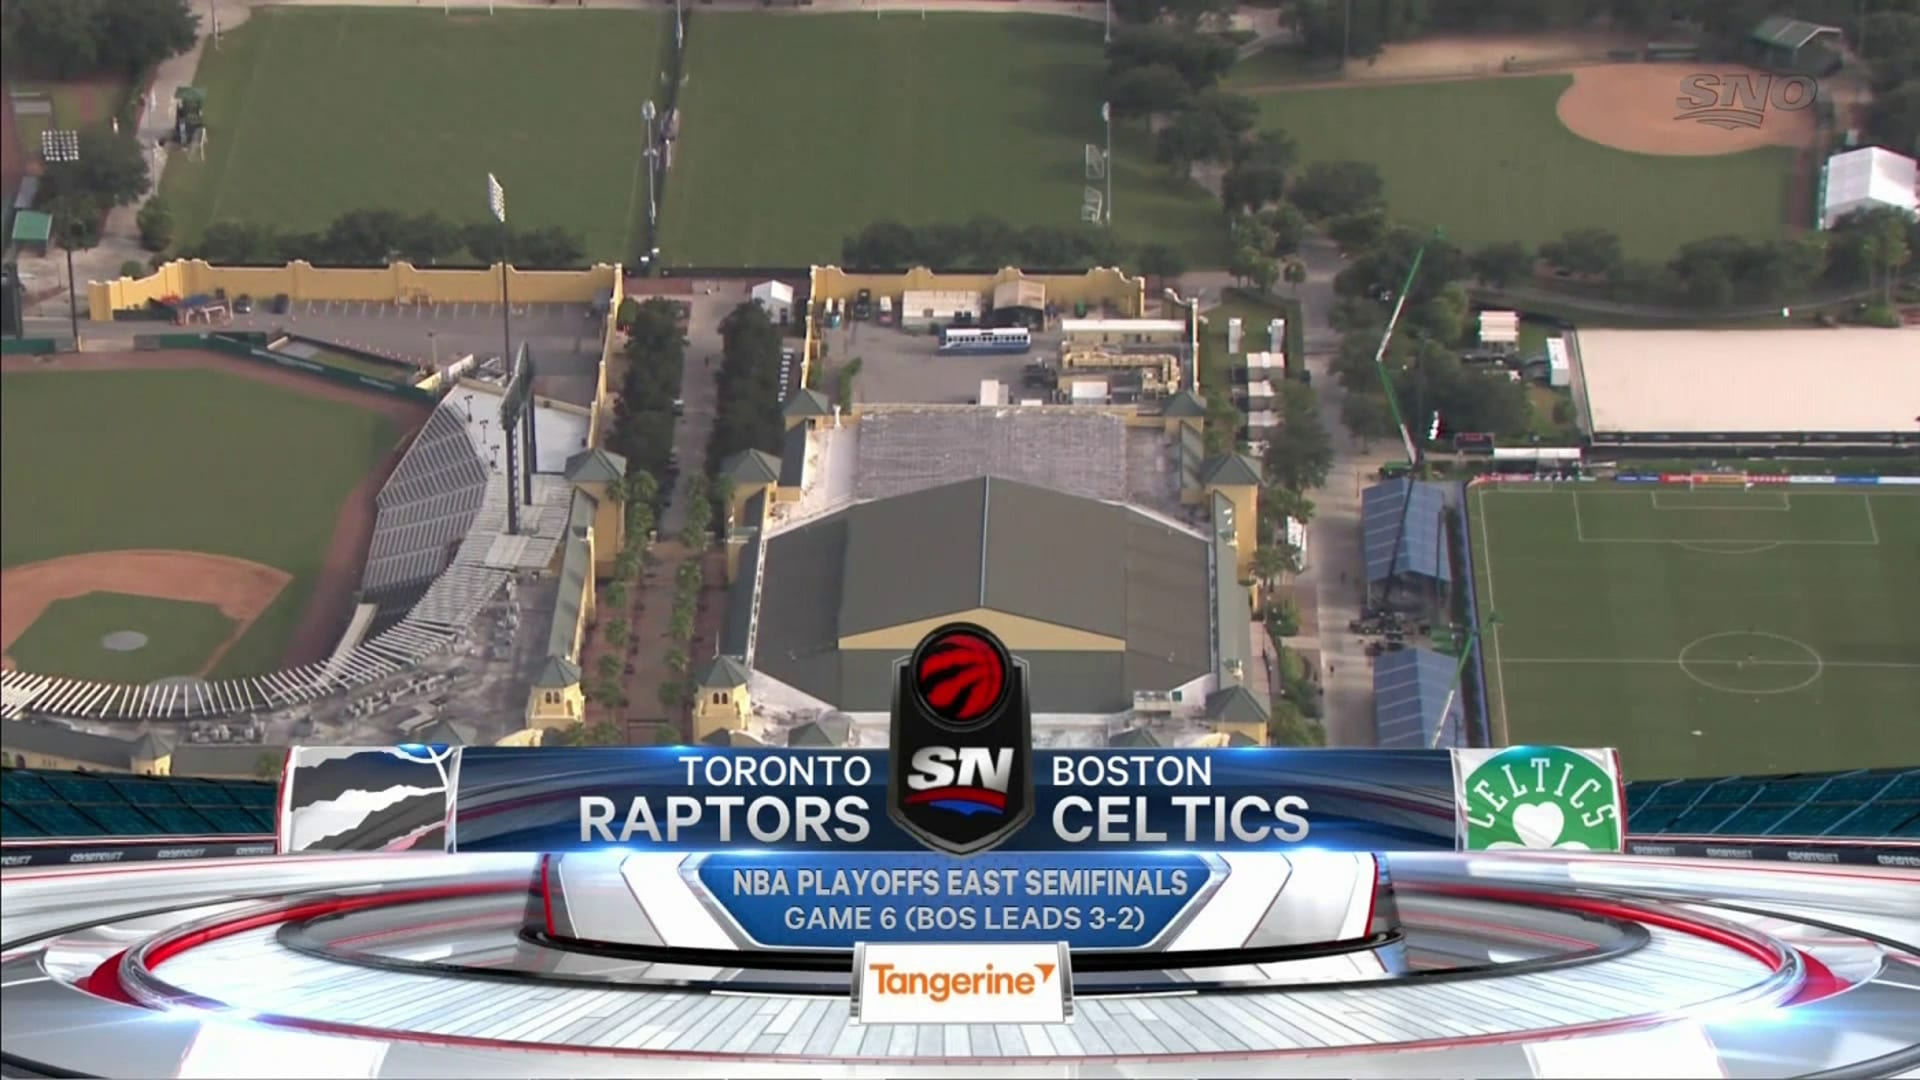 Tangerine Game Highlights: Raptors vs Celtics - September 9, 2020